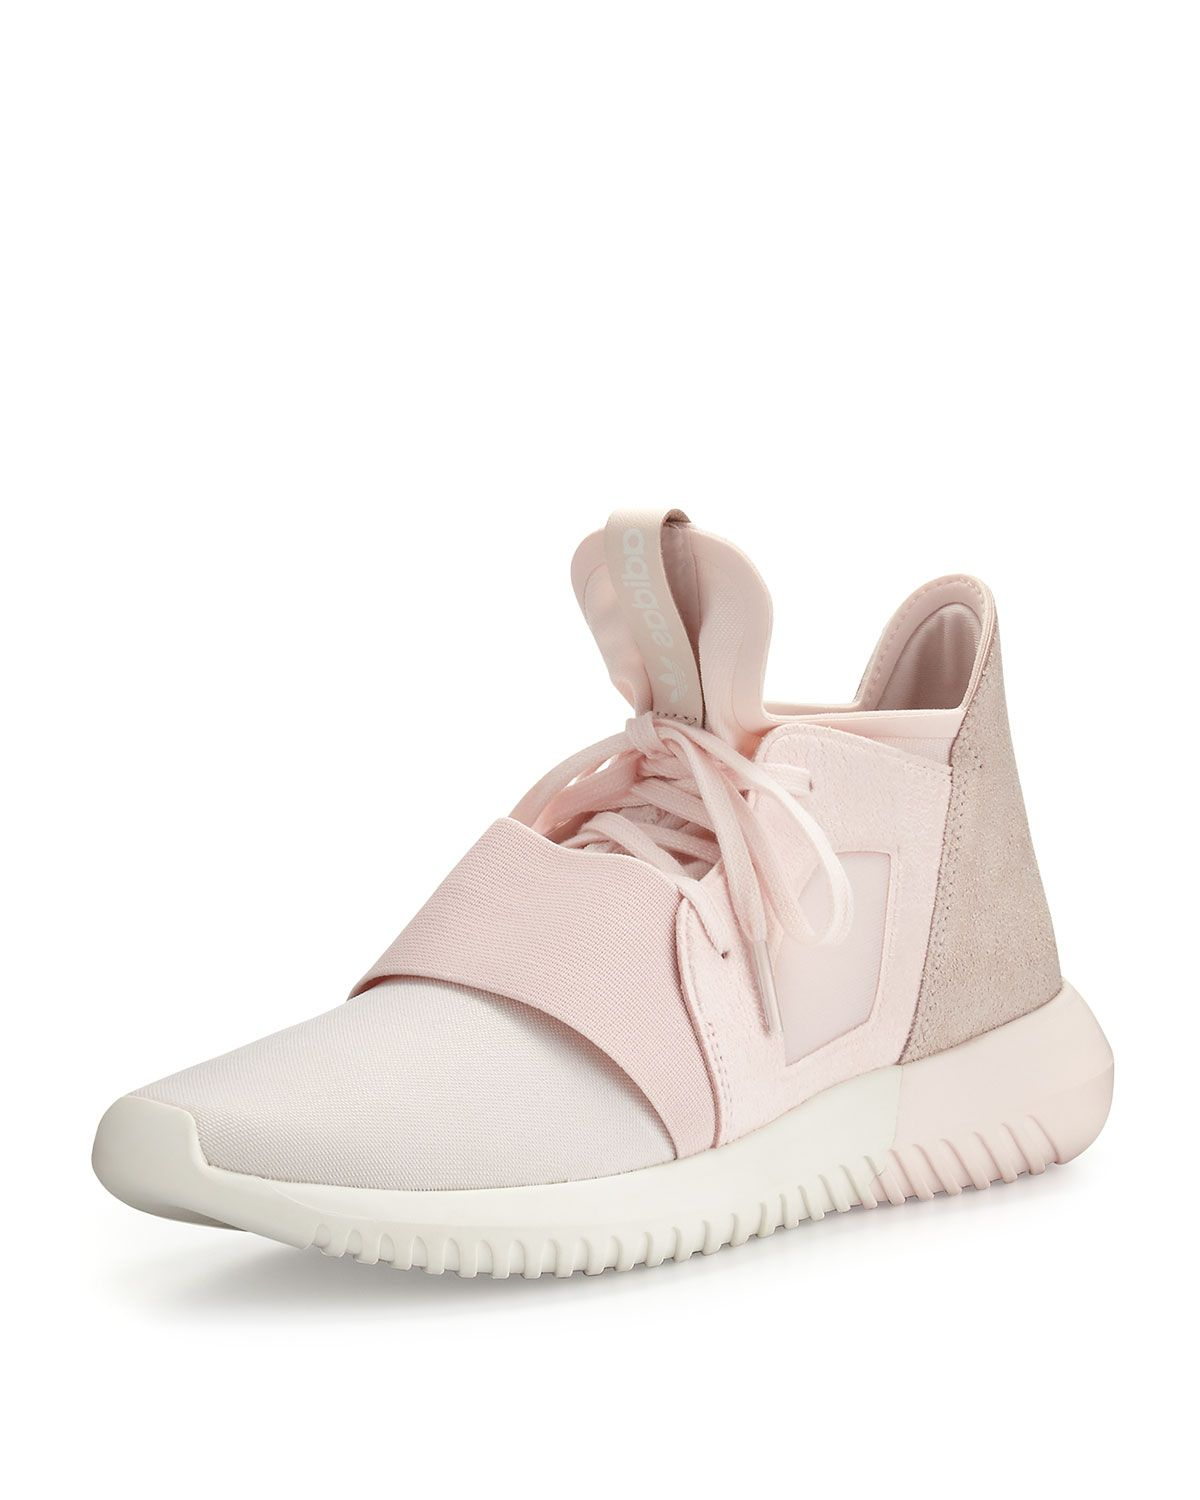 buy online 4e996 d22d8 Tubular Defiant Jersey   Suede Trainer, Halo Pink - adidas